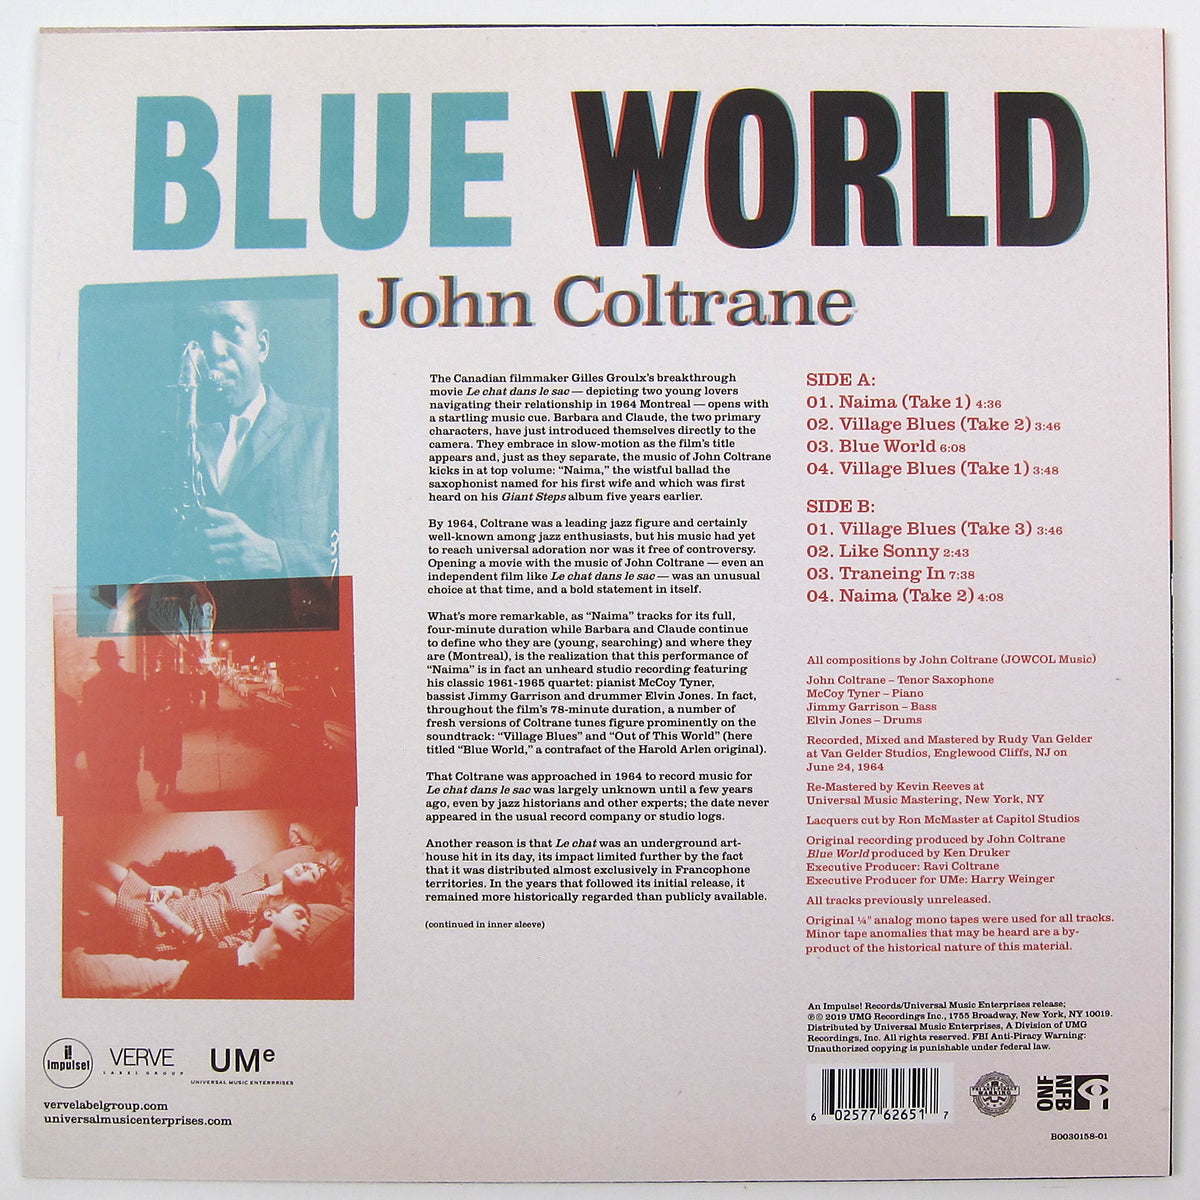 John Coltrane: Blue World Vinyl LP